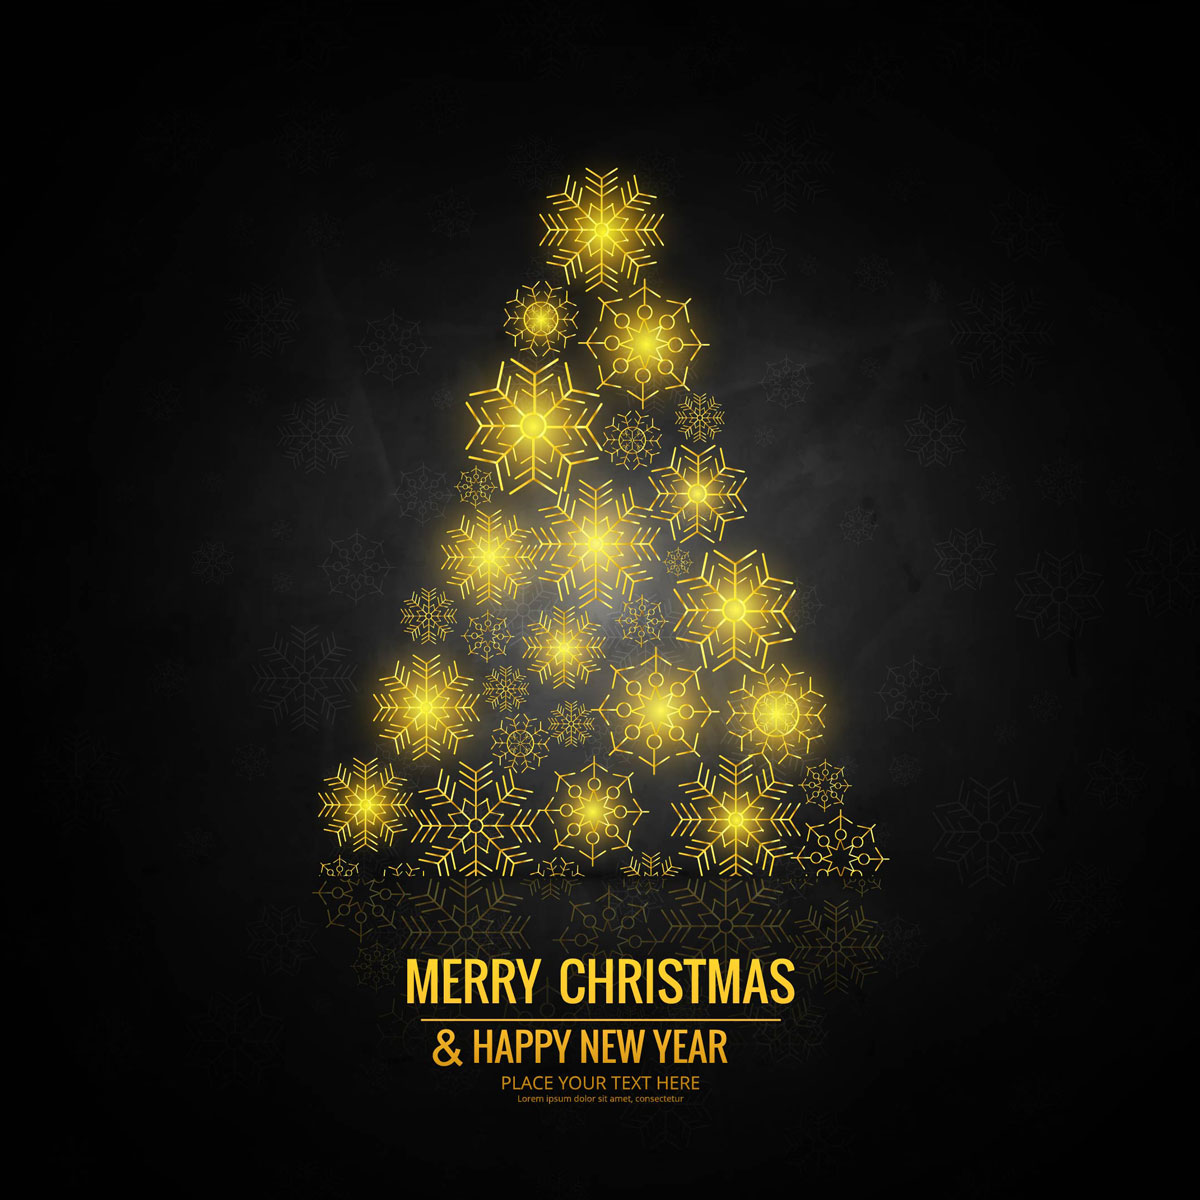 Merry Christmas greeting card colorful background vector - Download ...